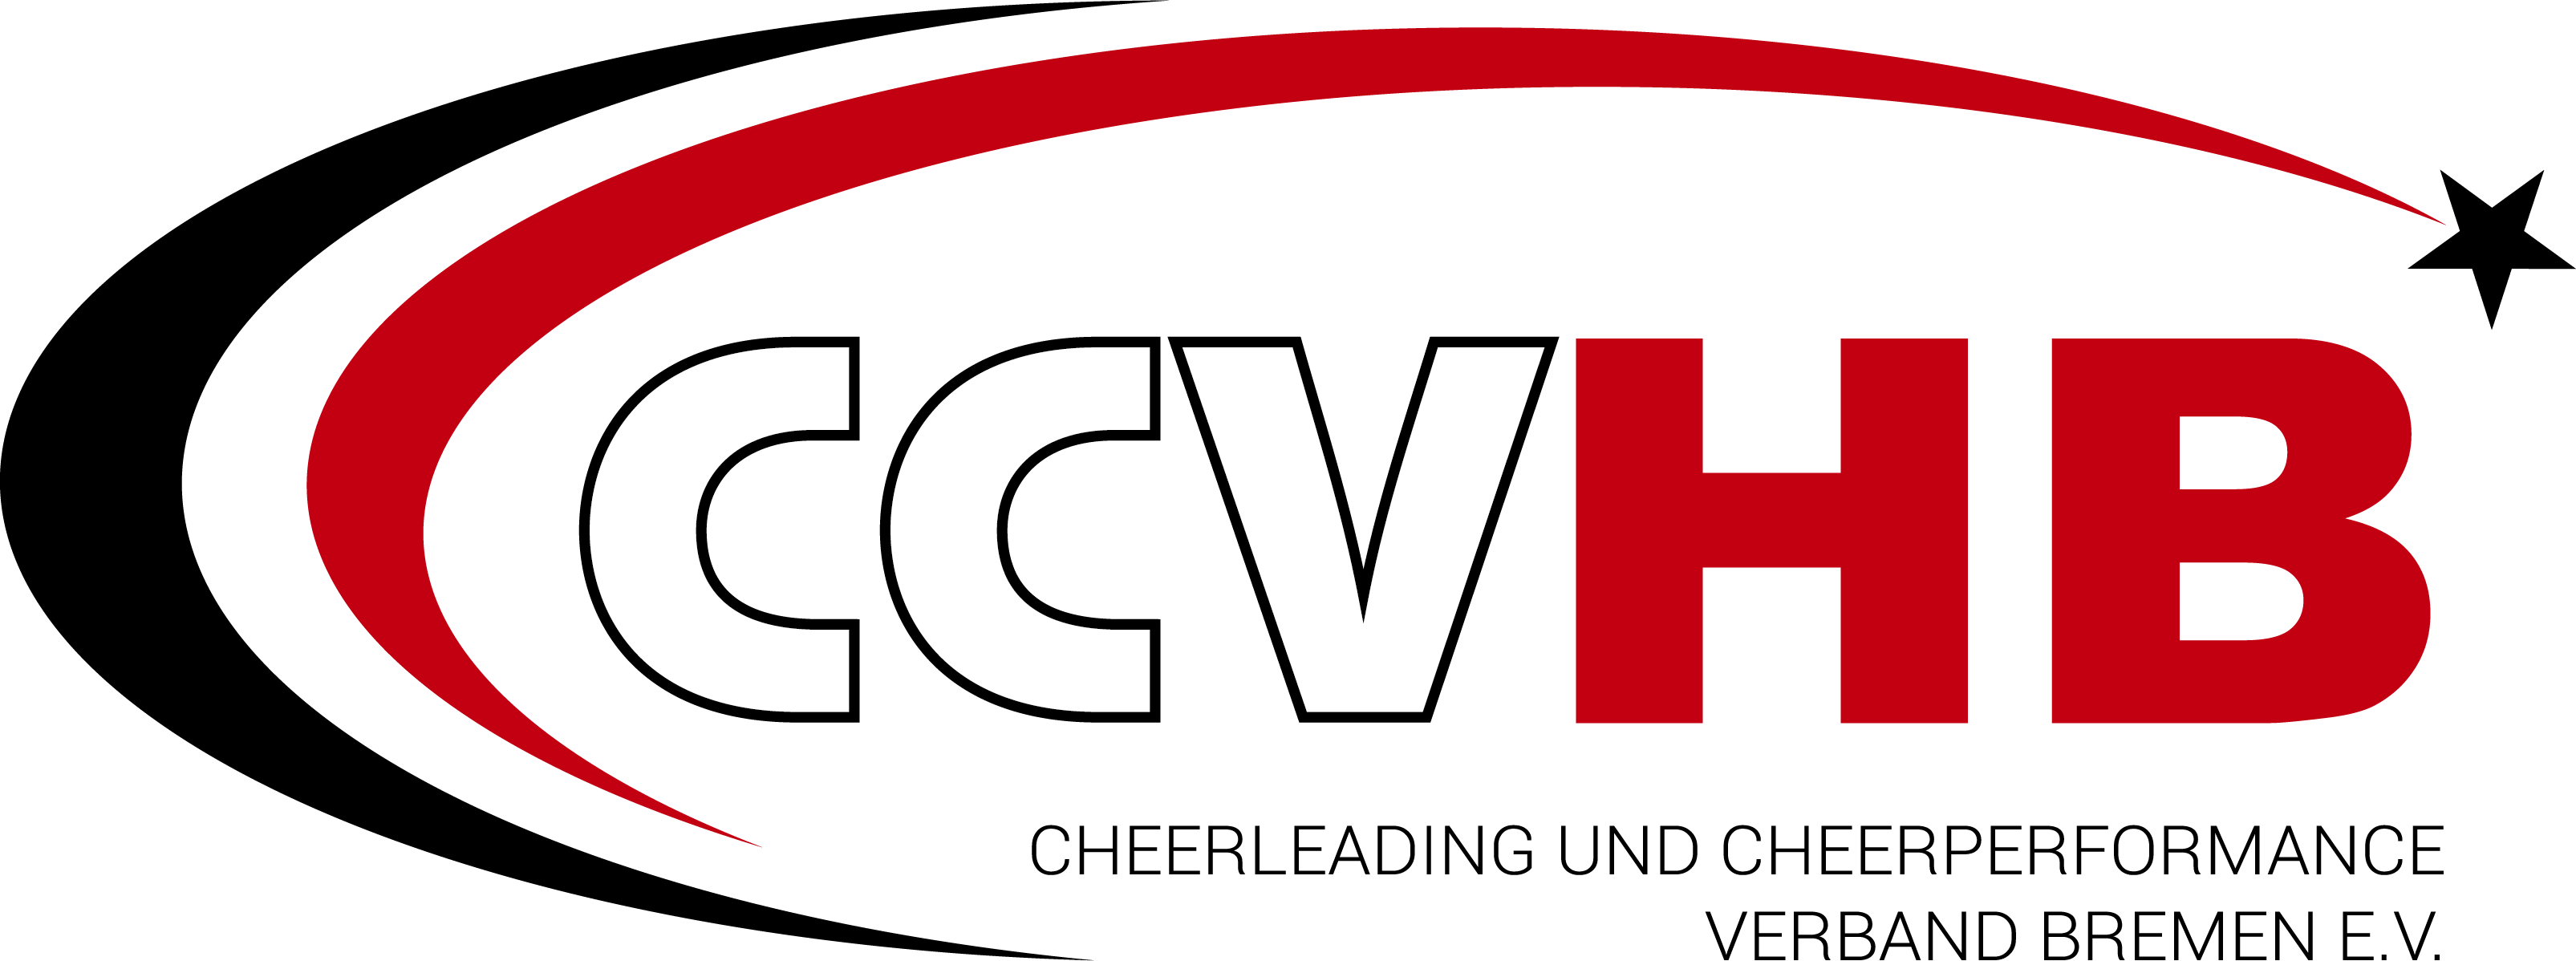 CHEERLEADING UND CHEERPERFORMANCE VERBAND HANSESTADT BREMEN E.V.